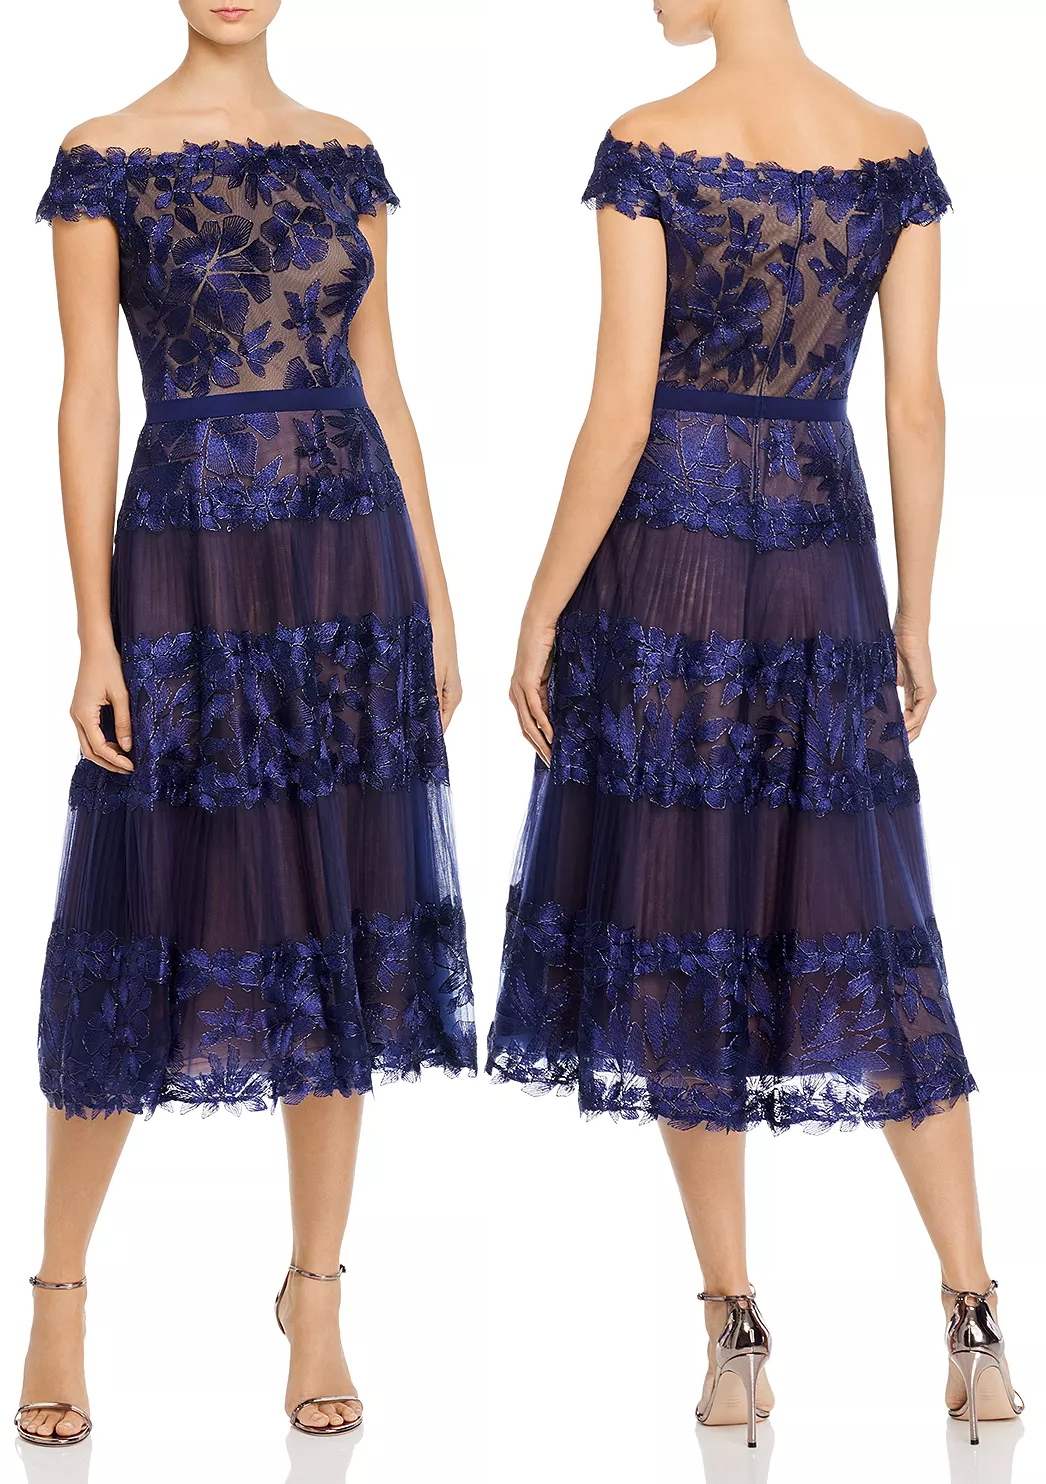 Navy Blue Lace Dress. Dress in Navy Lace 2020. Lace Dresses for Kentucky Derby 2020. What to wear for the Kentucky Derby 2020. What to wear to the Races. Outfit ideas for the Races. Floral Lace Dress 2020. Kentucky Derby Outfits